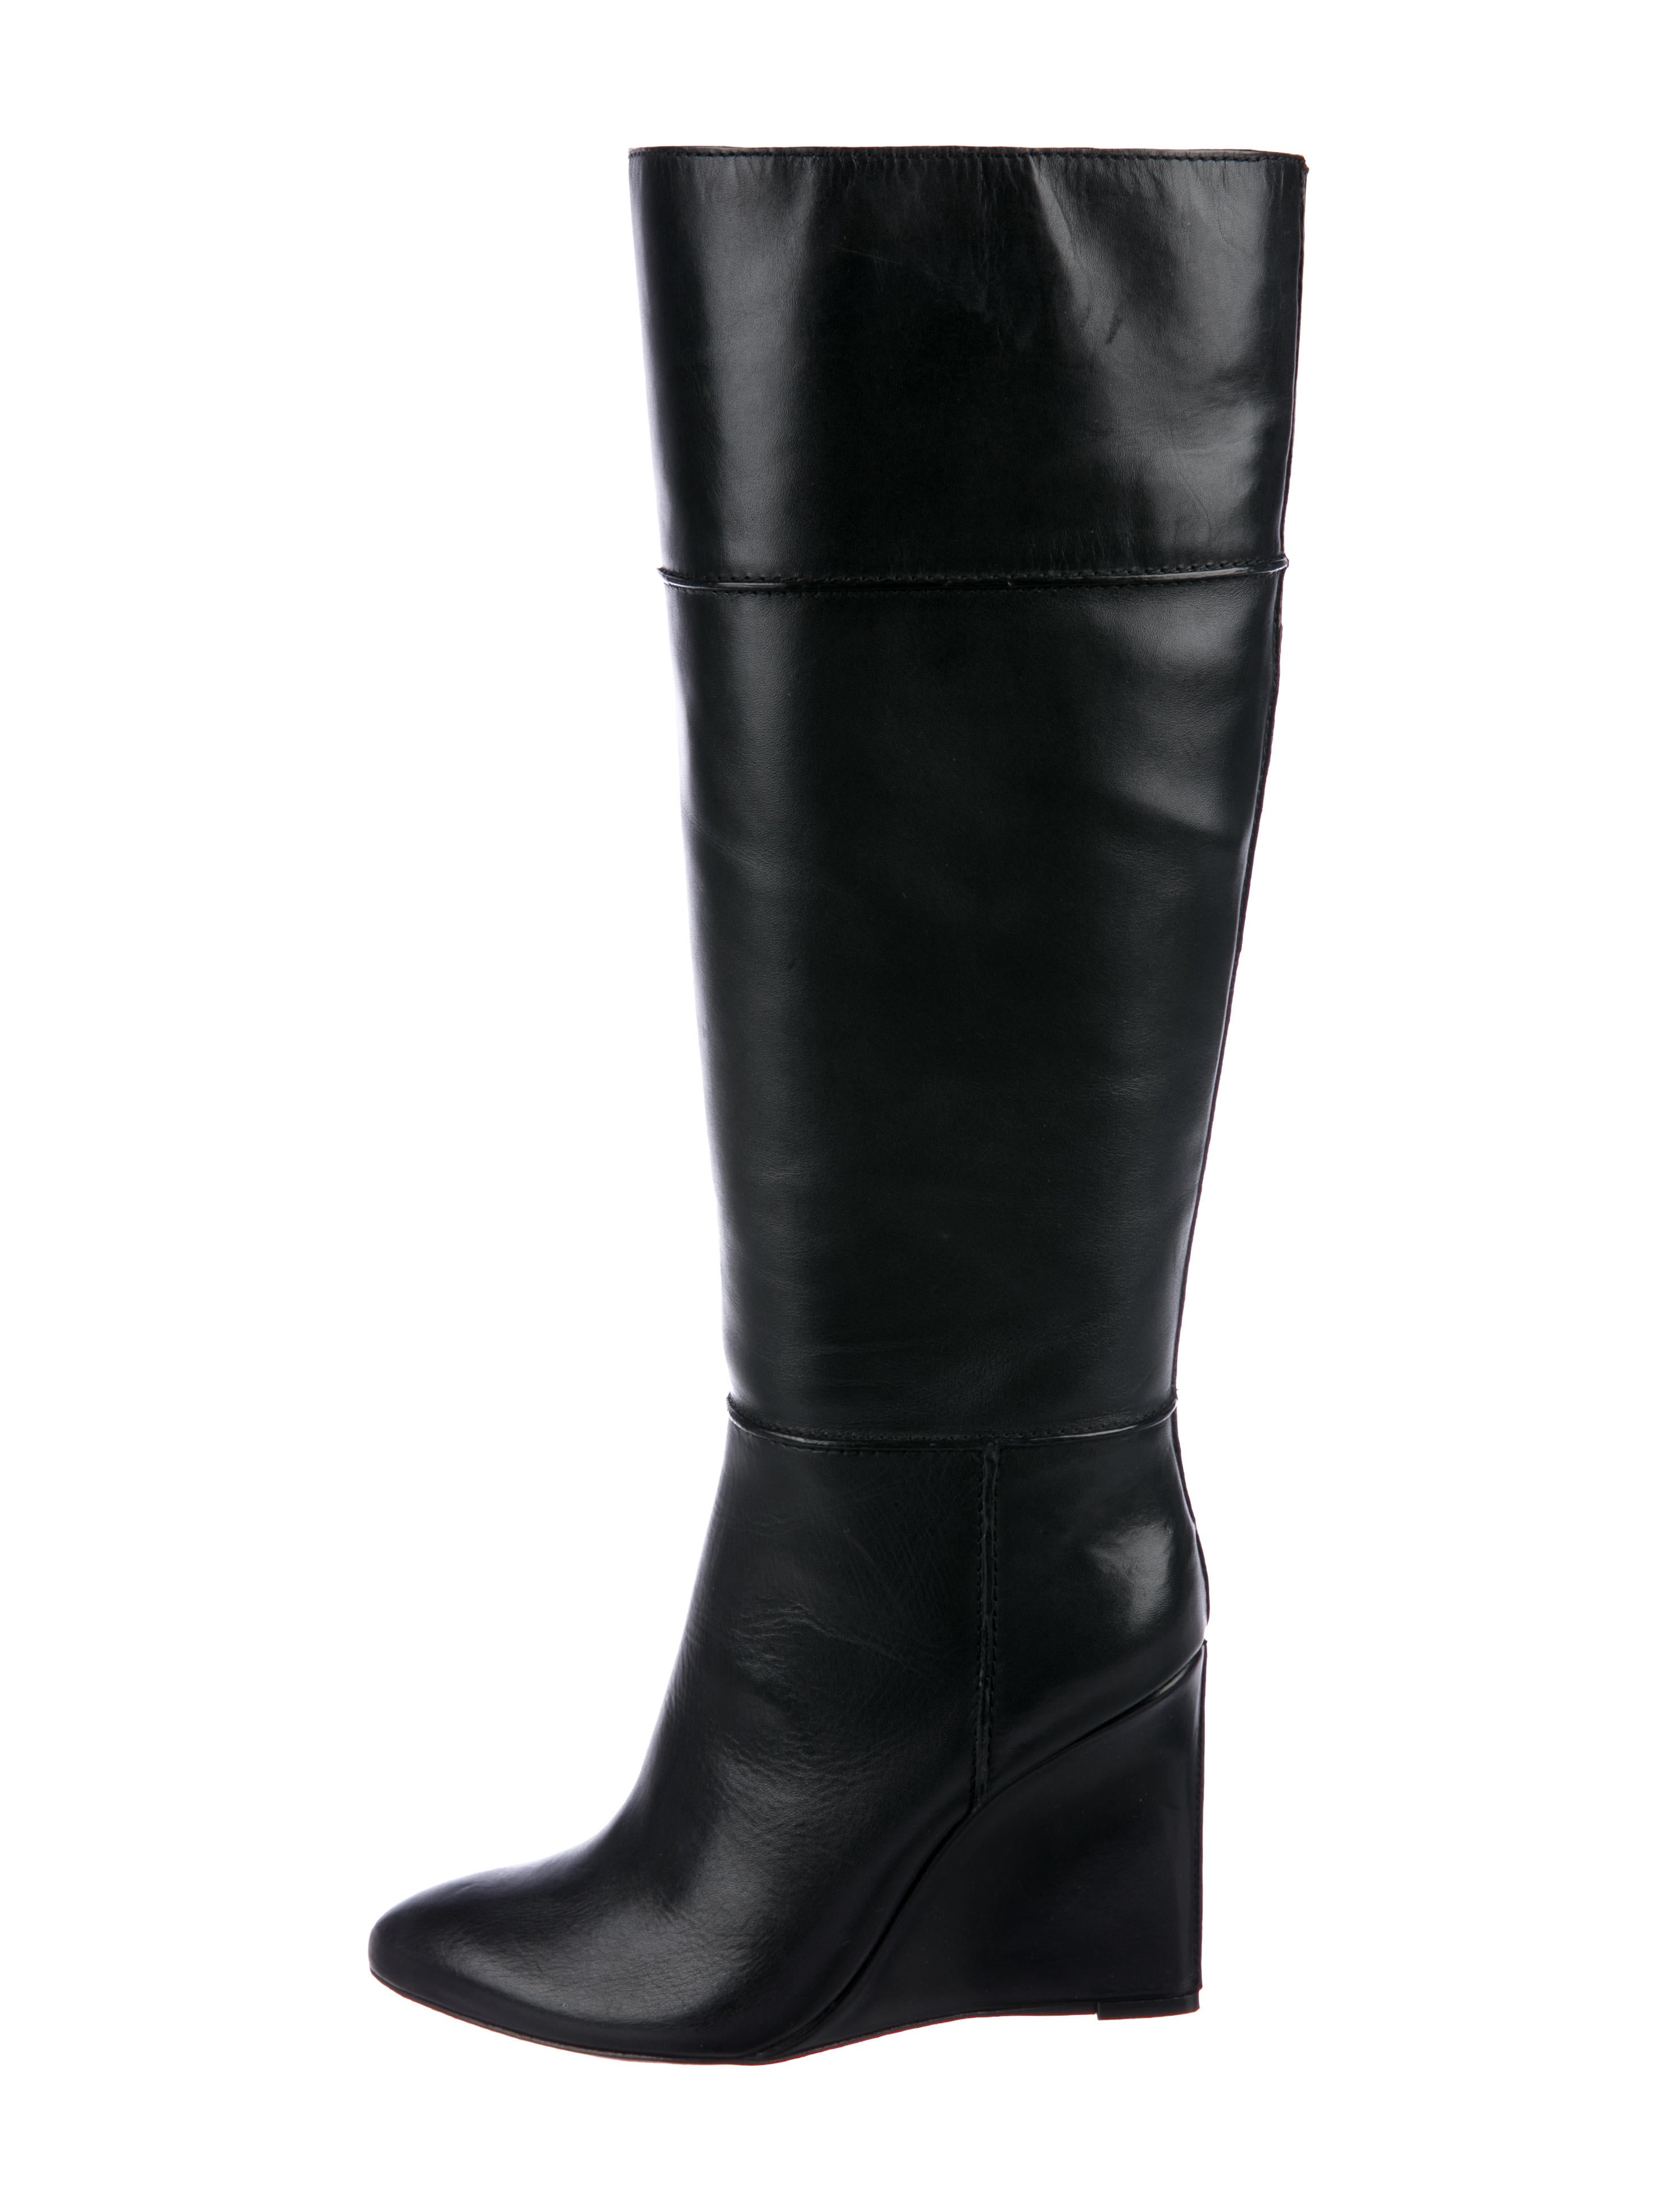 ff9c482692f Tory Burch Linnett Knee-High Boots - Shoes - WTO149186